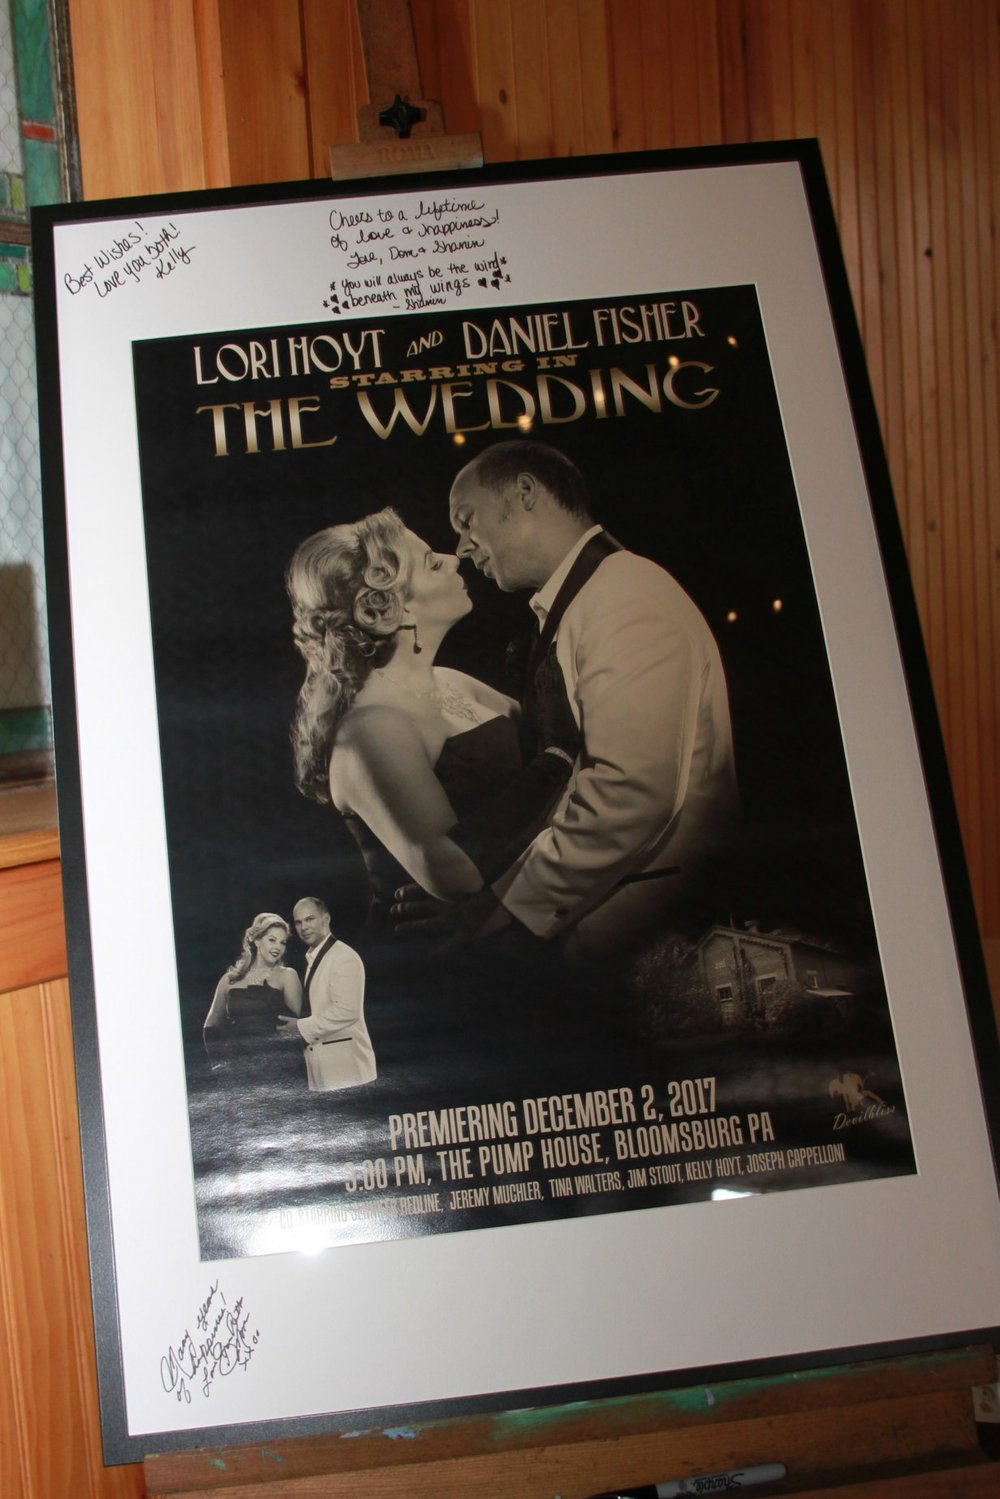 A poster displayed at the wedding that several guests signed for the couple